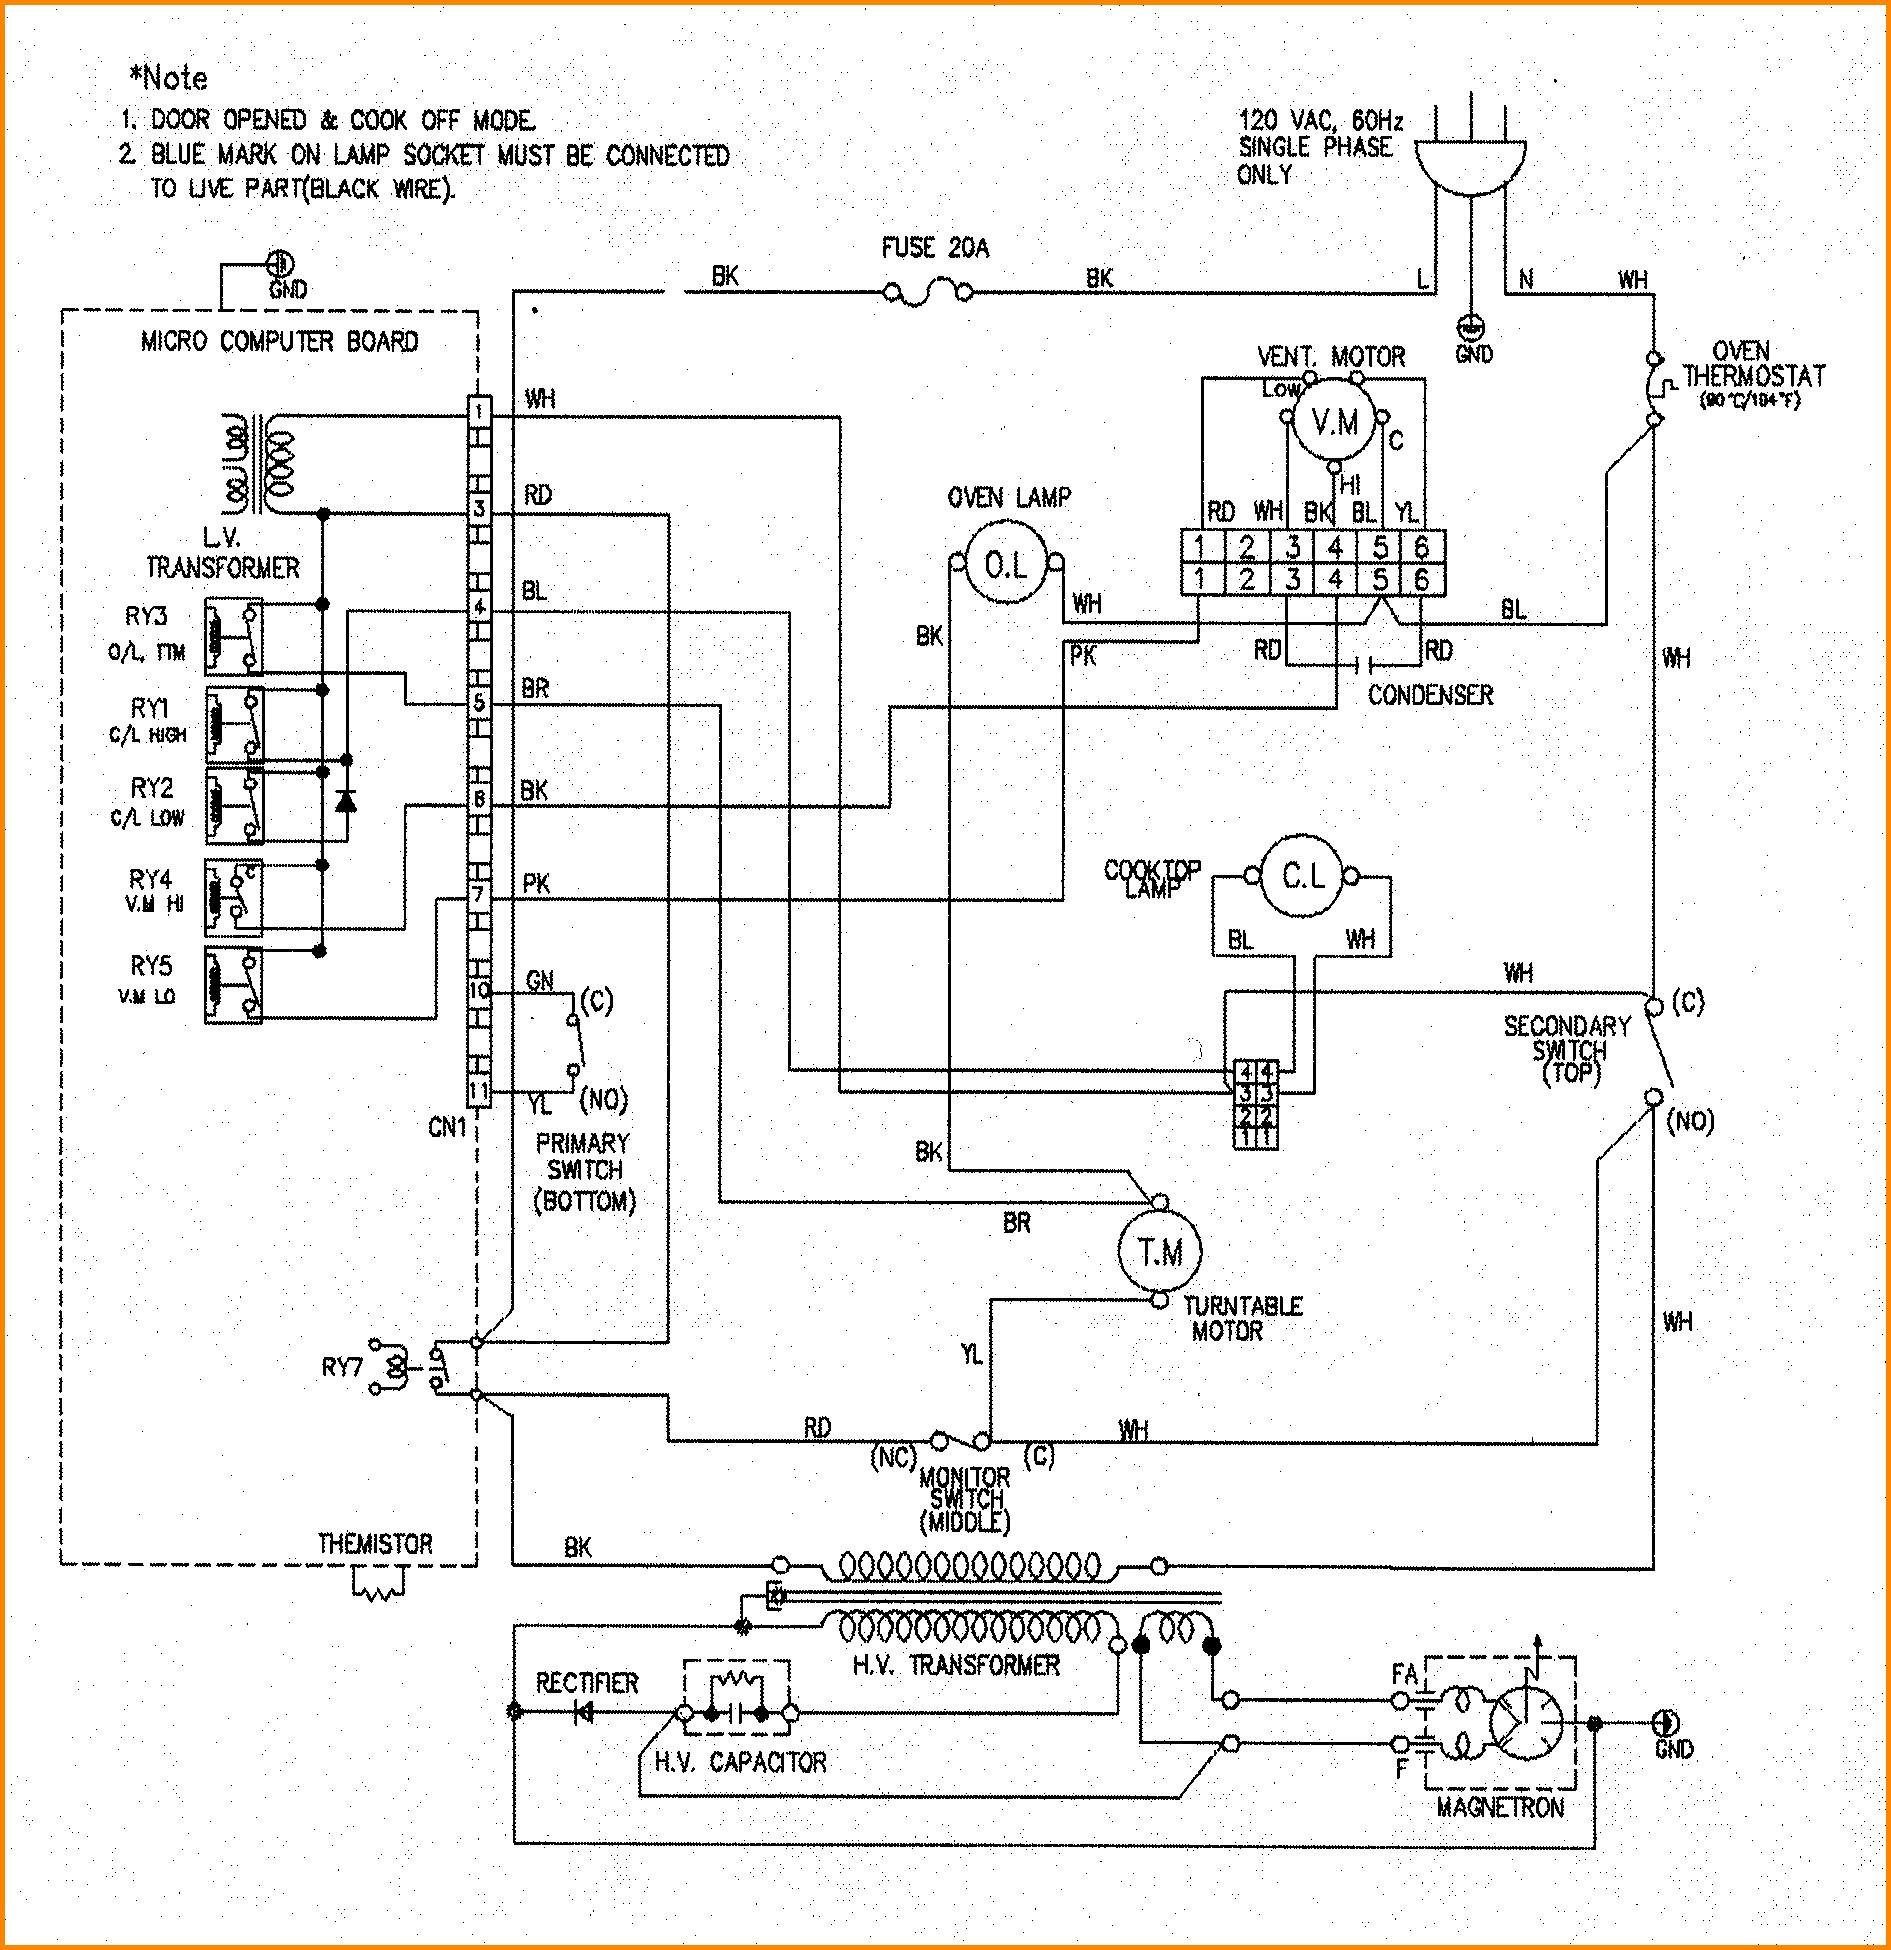 wiring diagram oven thermostat